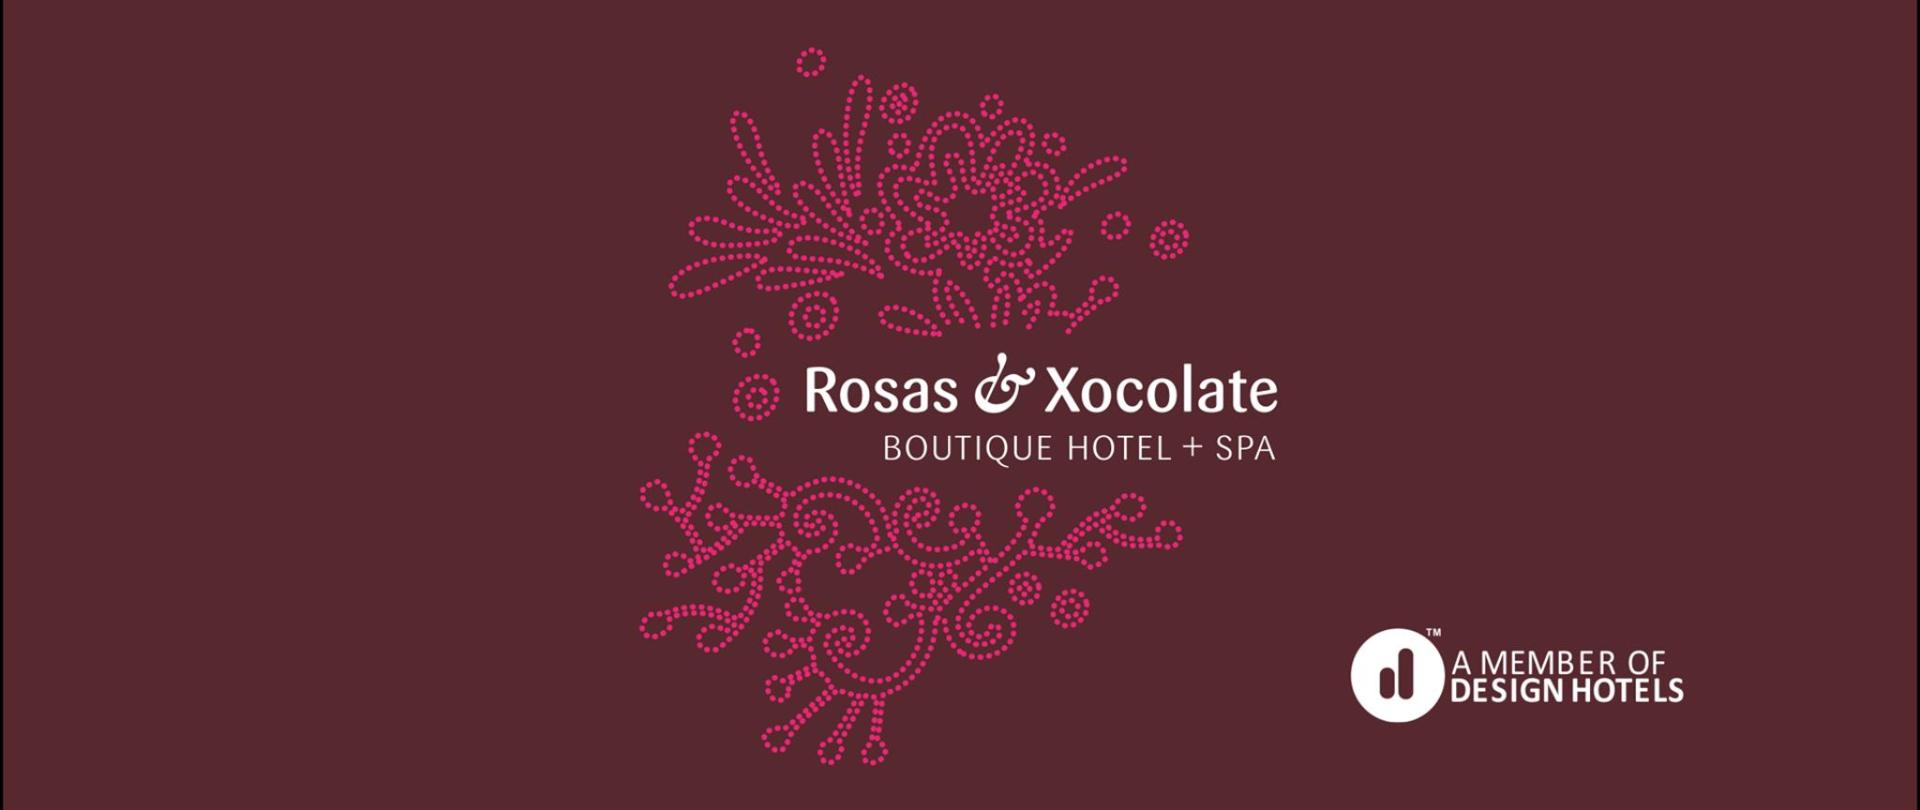 Rosas & Xocolate Boutique Hotel + Spa